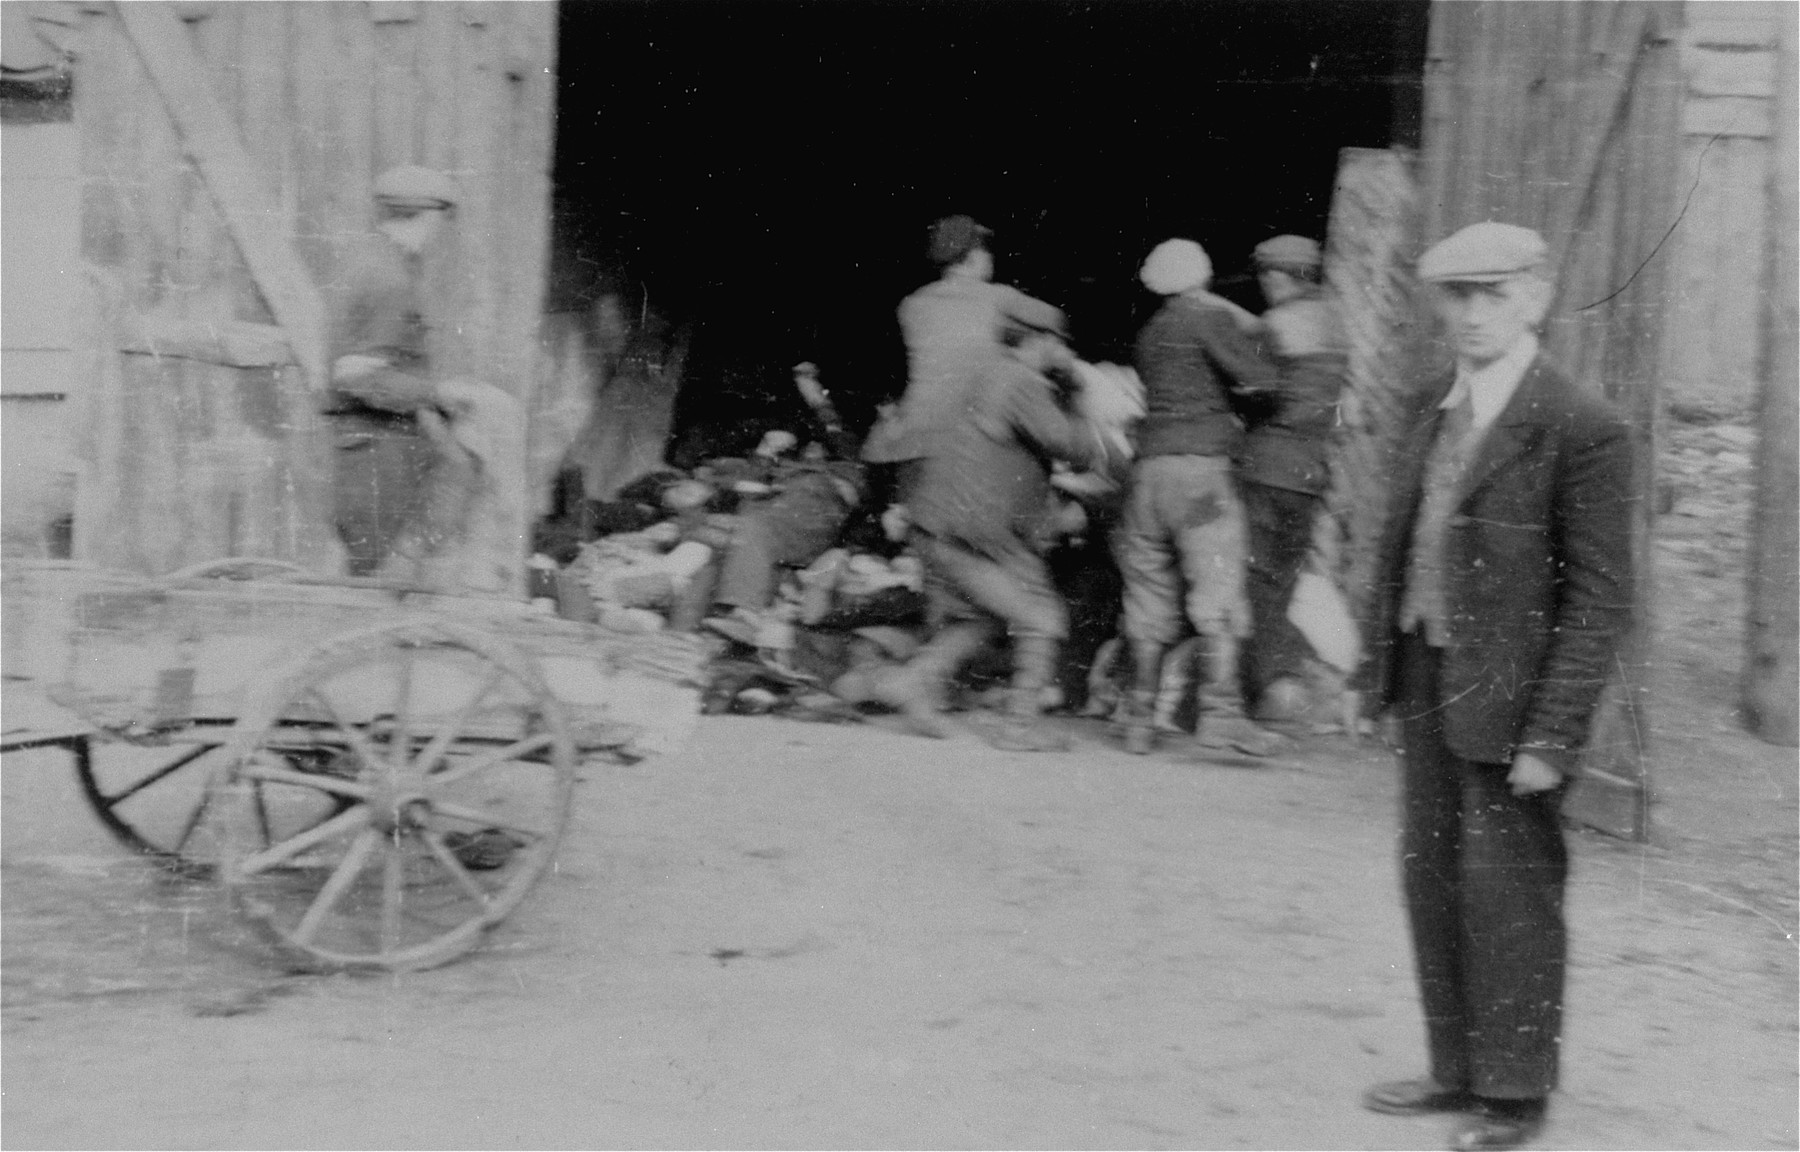 A Jewish council official named Kaminski (in the foreground) watches as men remove corpses from a cart and pile them in a barn in the Deblin Irena ghetto.